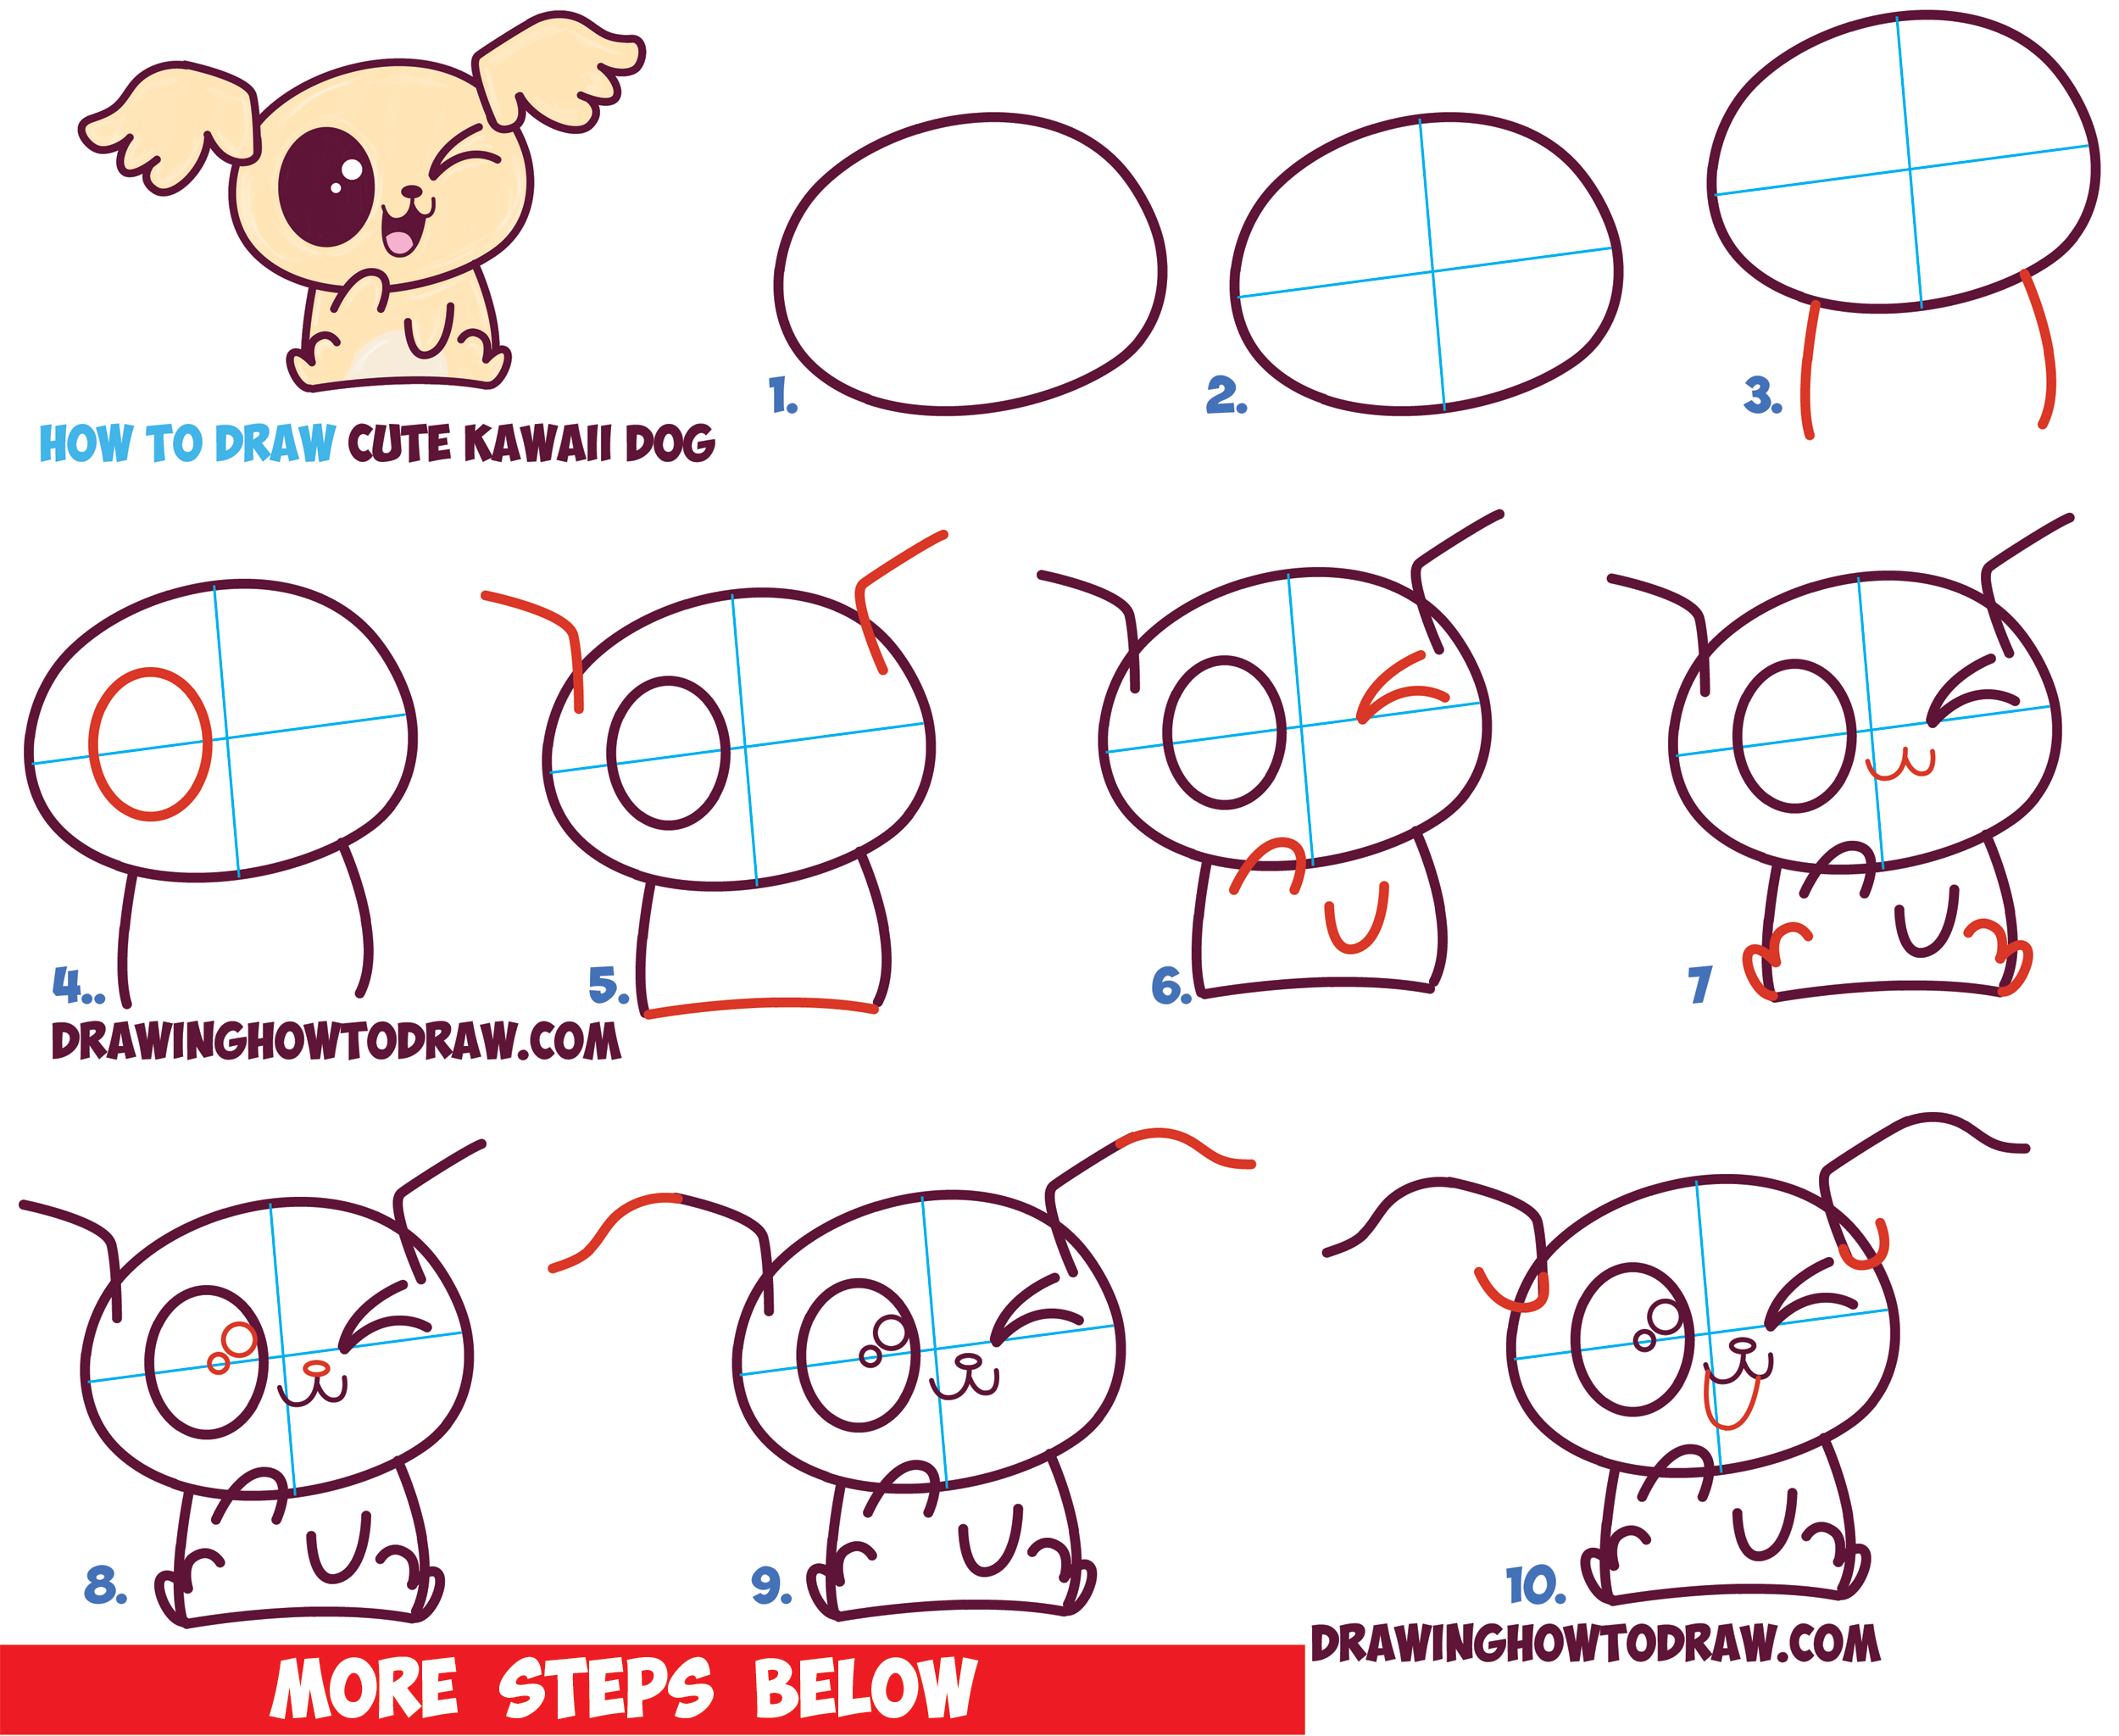 Drawn puppy kawaii Easy by Drawing Step with